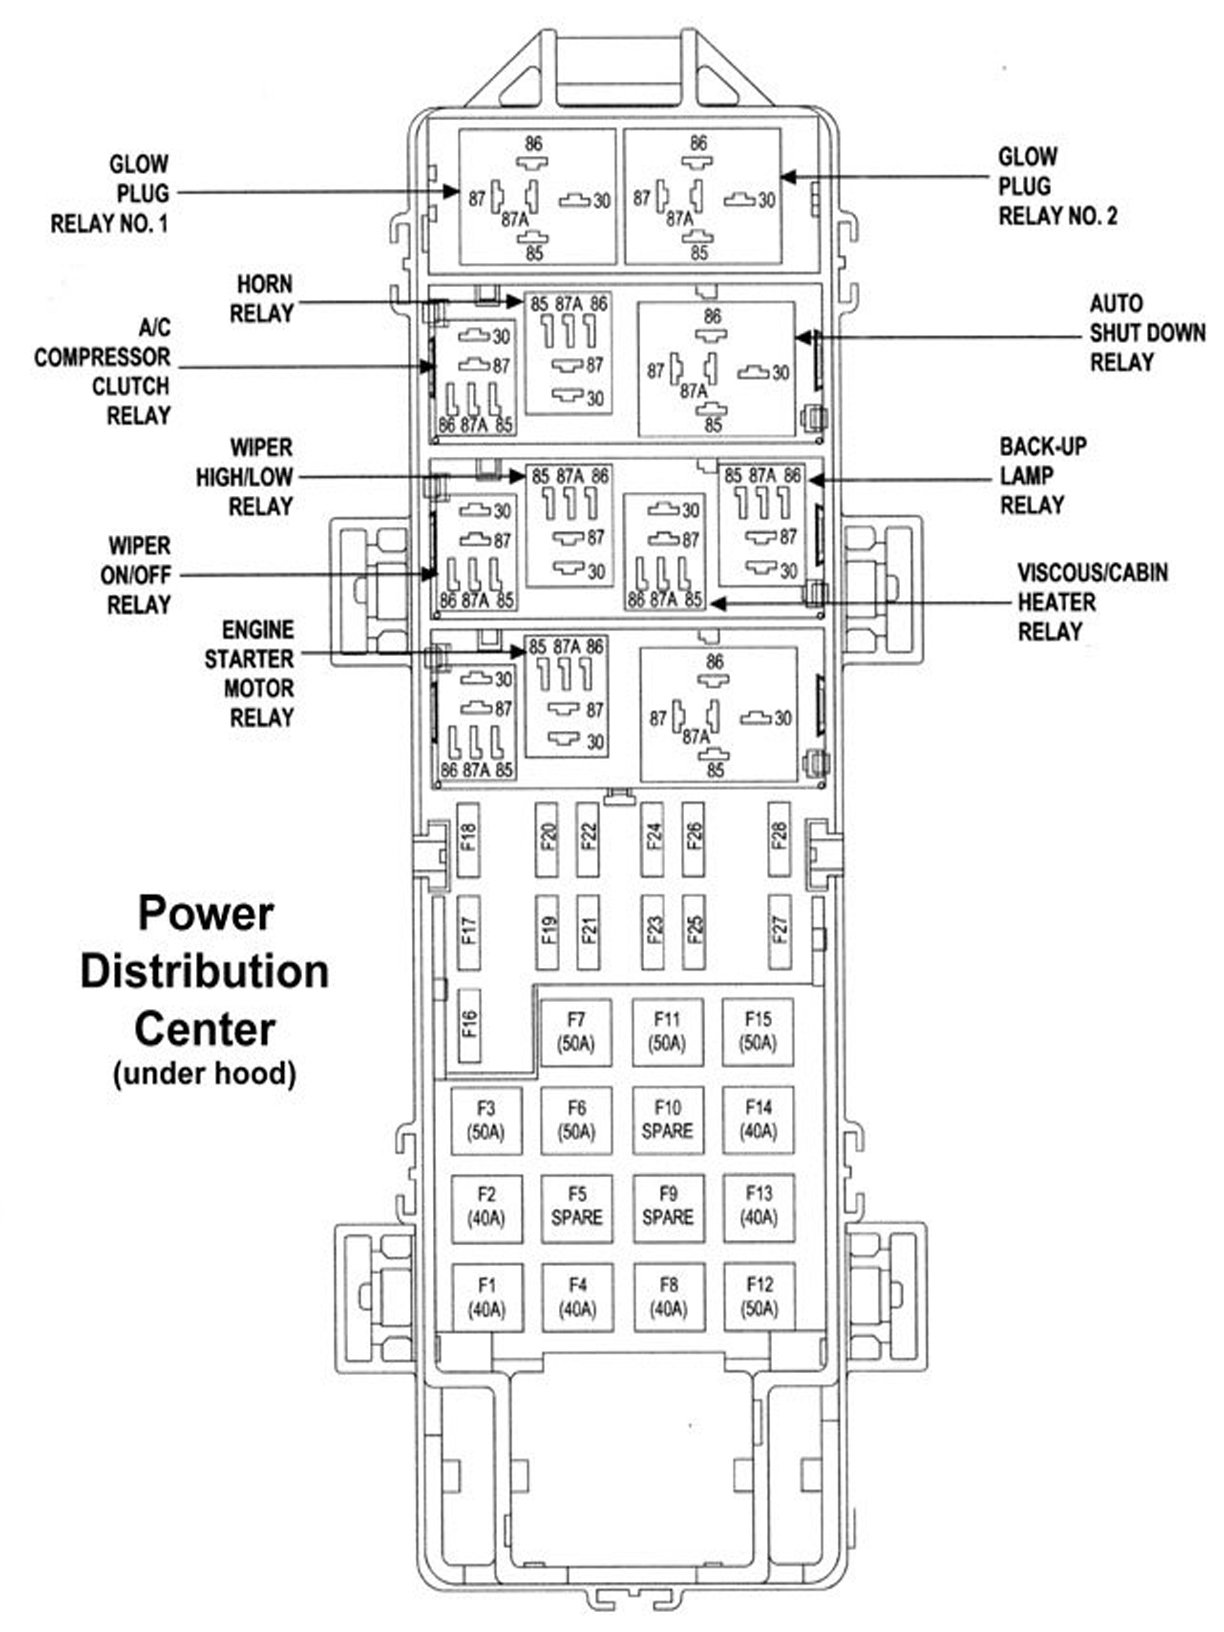 AAAAAAAAug 28 Fuse Box 04 91415 fuse box 96 jeep cherokee wiring diagram simonand 1998 jeep cherokee fuse box diagram at readyjetset.co